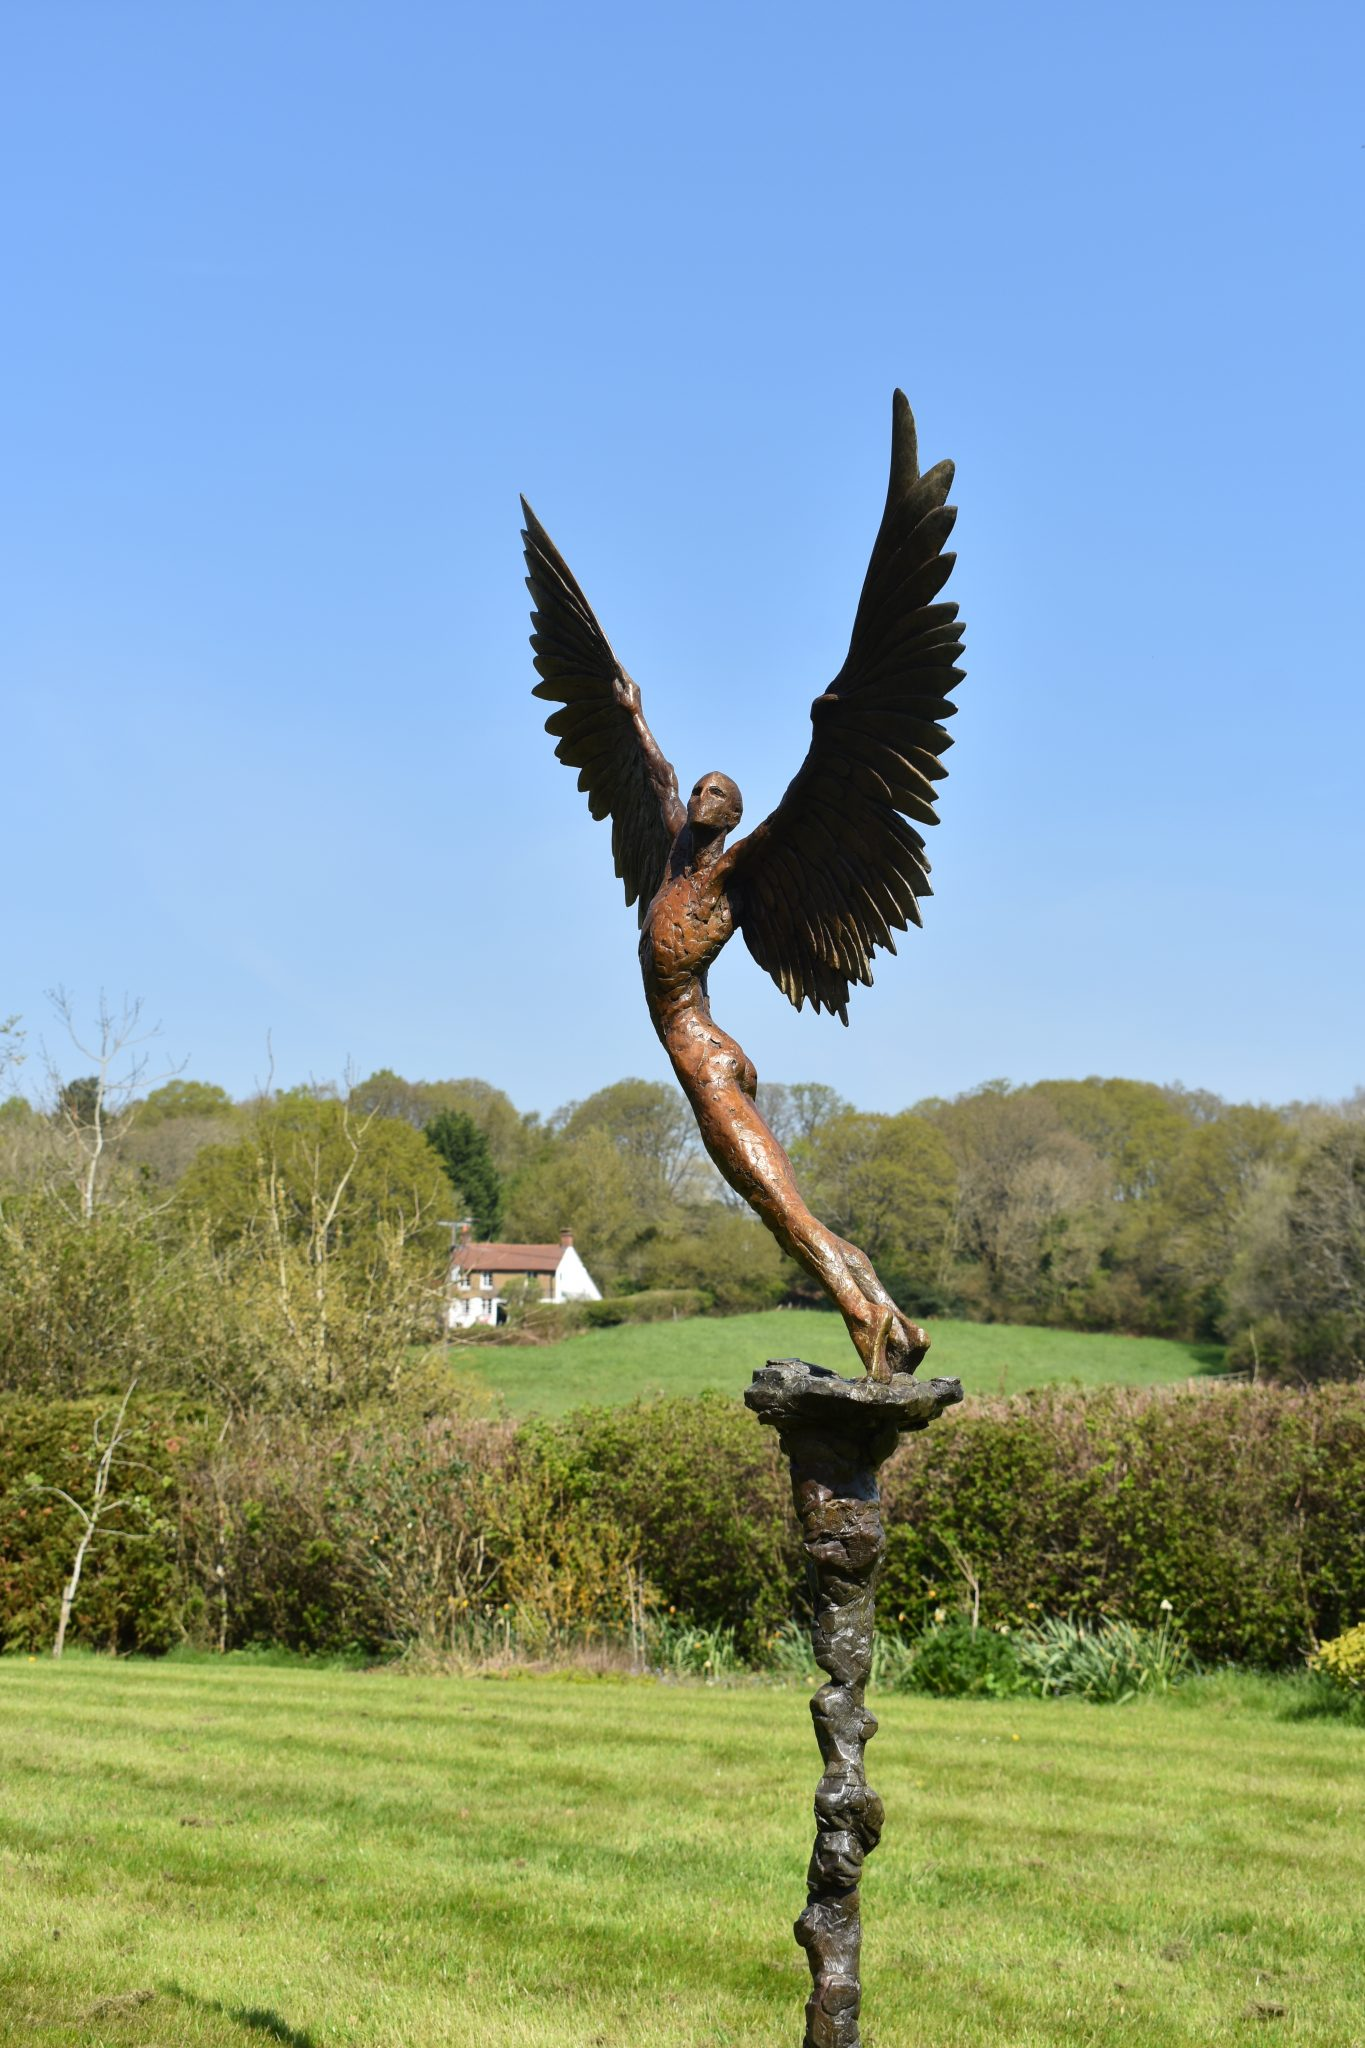 Icarus bronze figurative sculpture